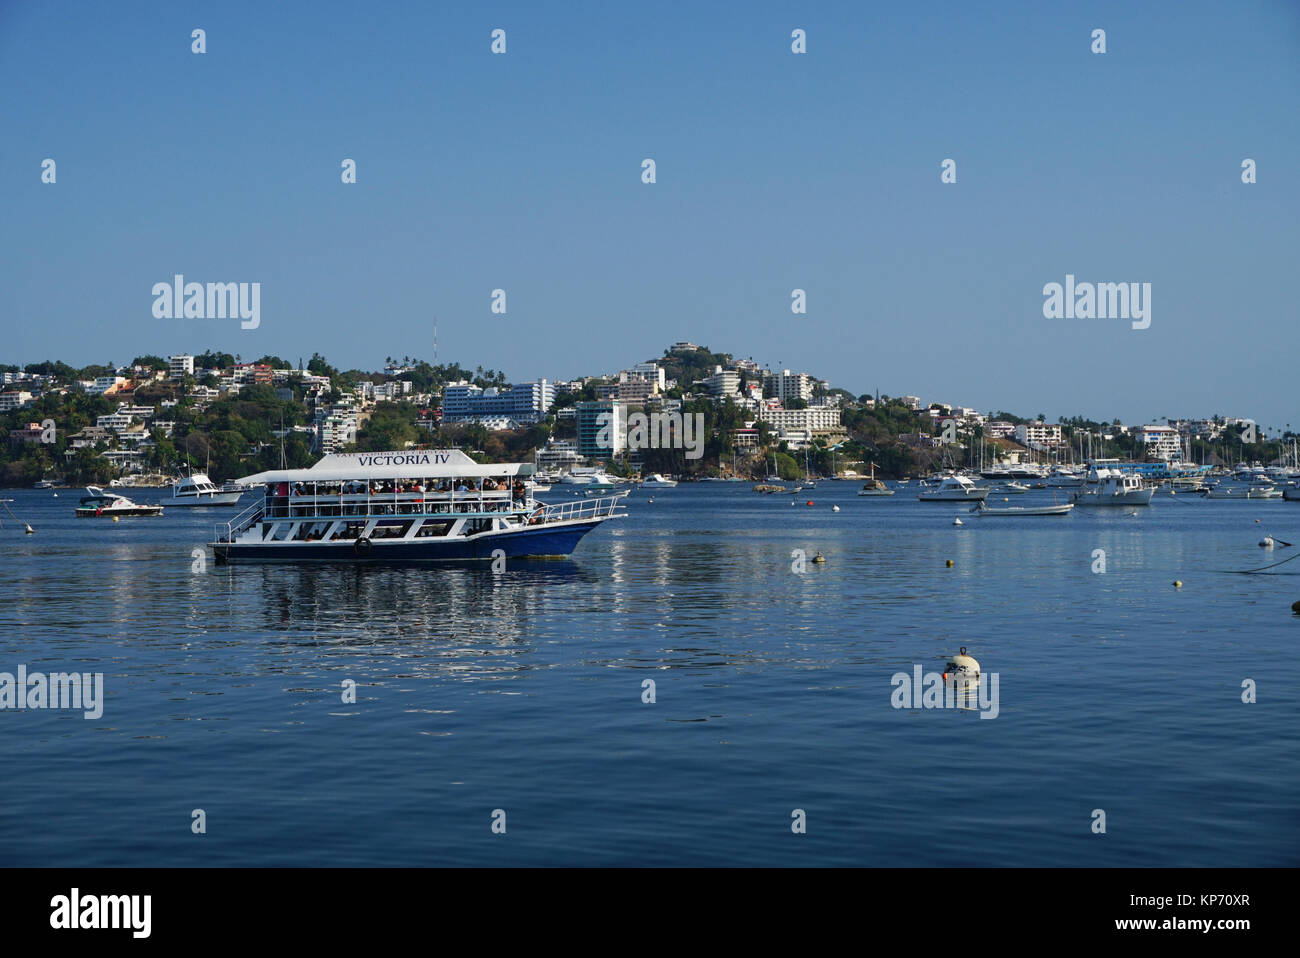 Tourist boats in the Bay of Acapulco, Acapulco, Mexico - Stock Image